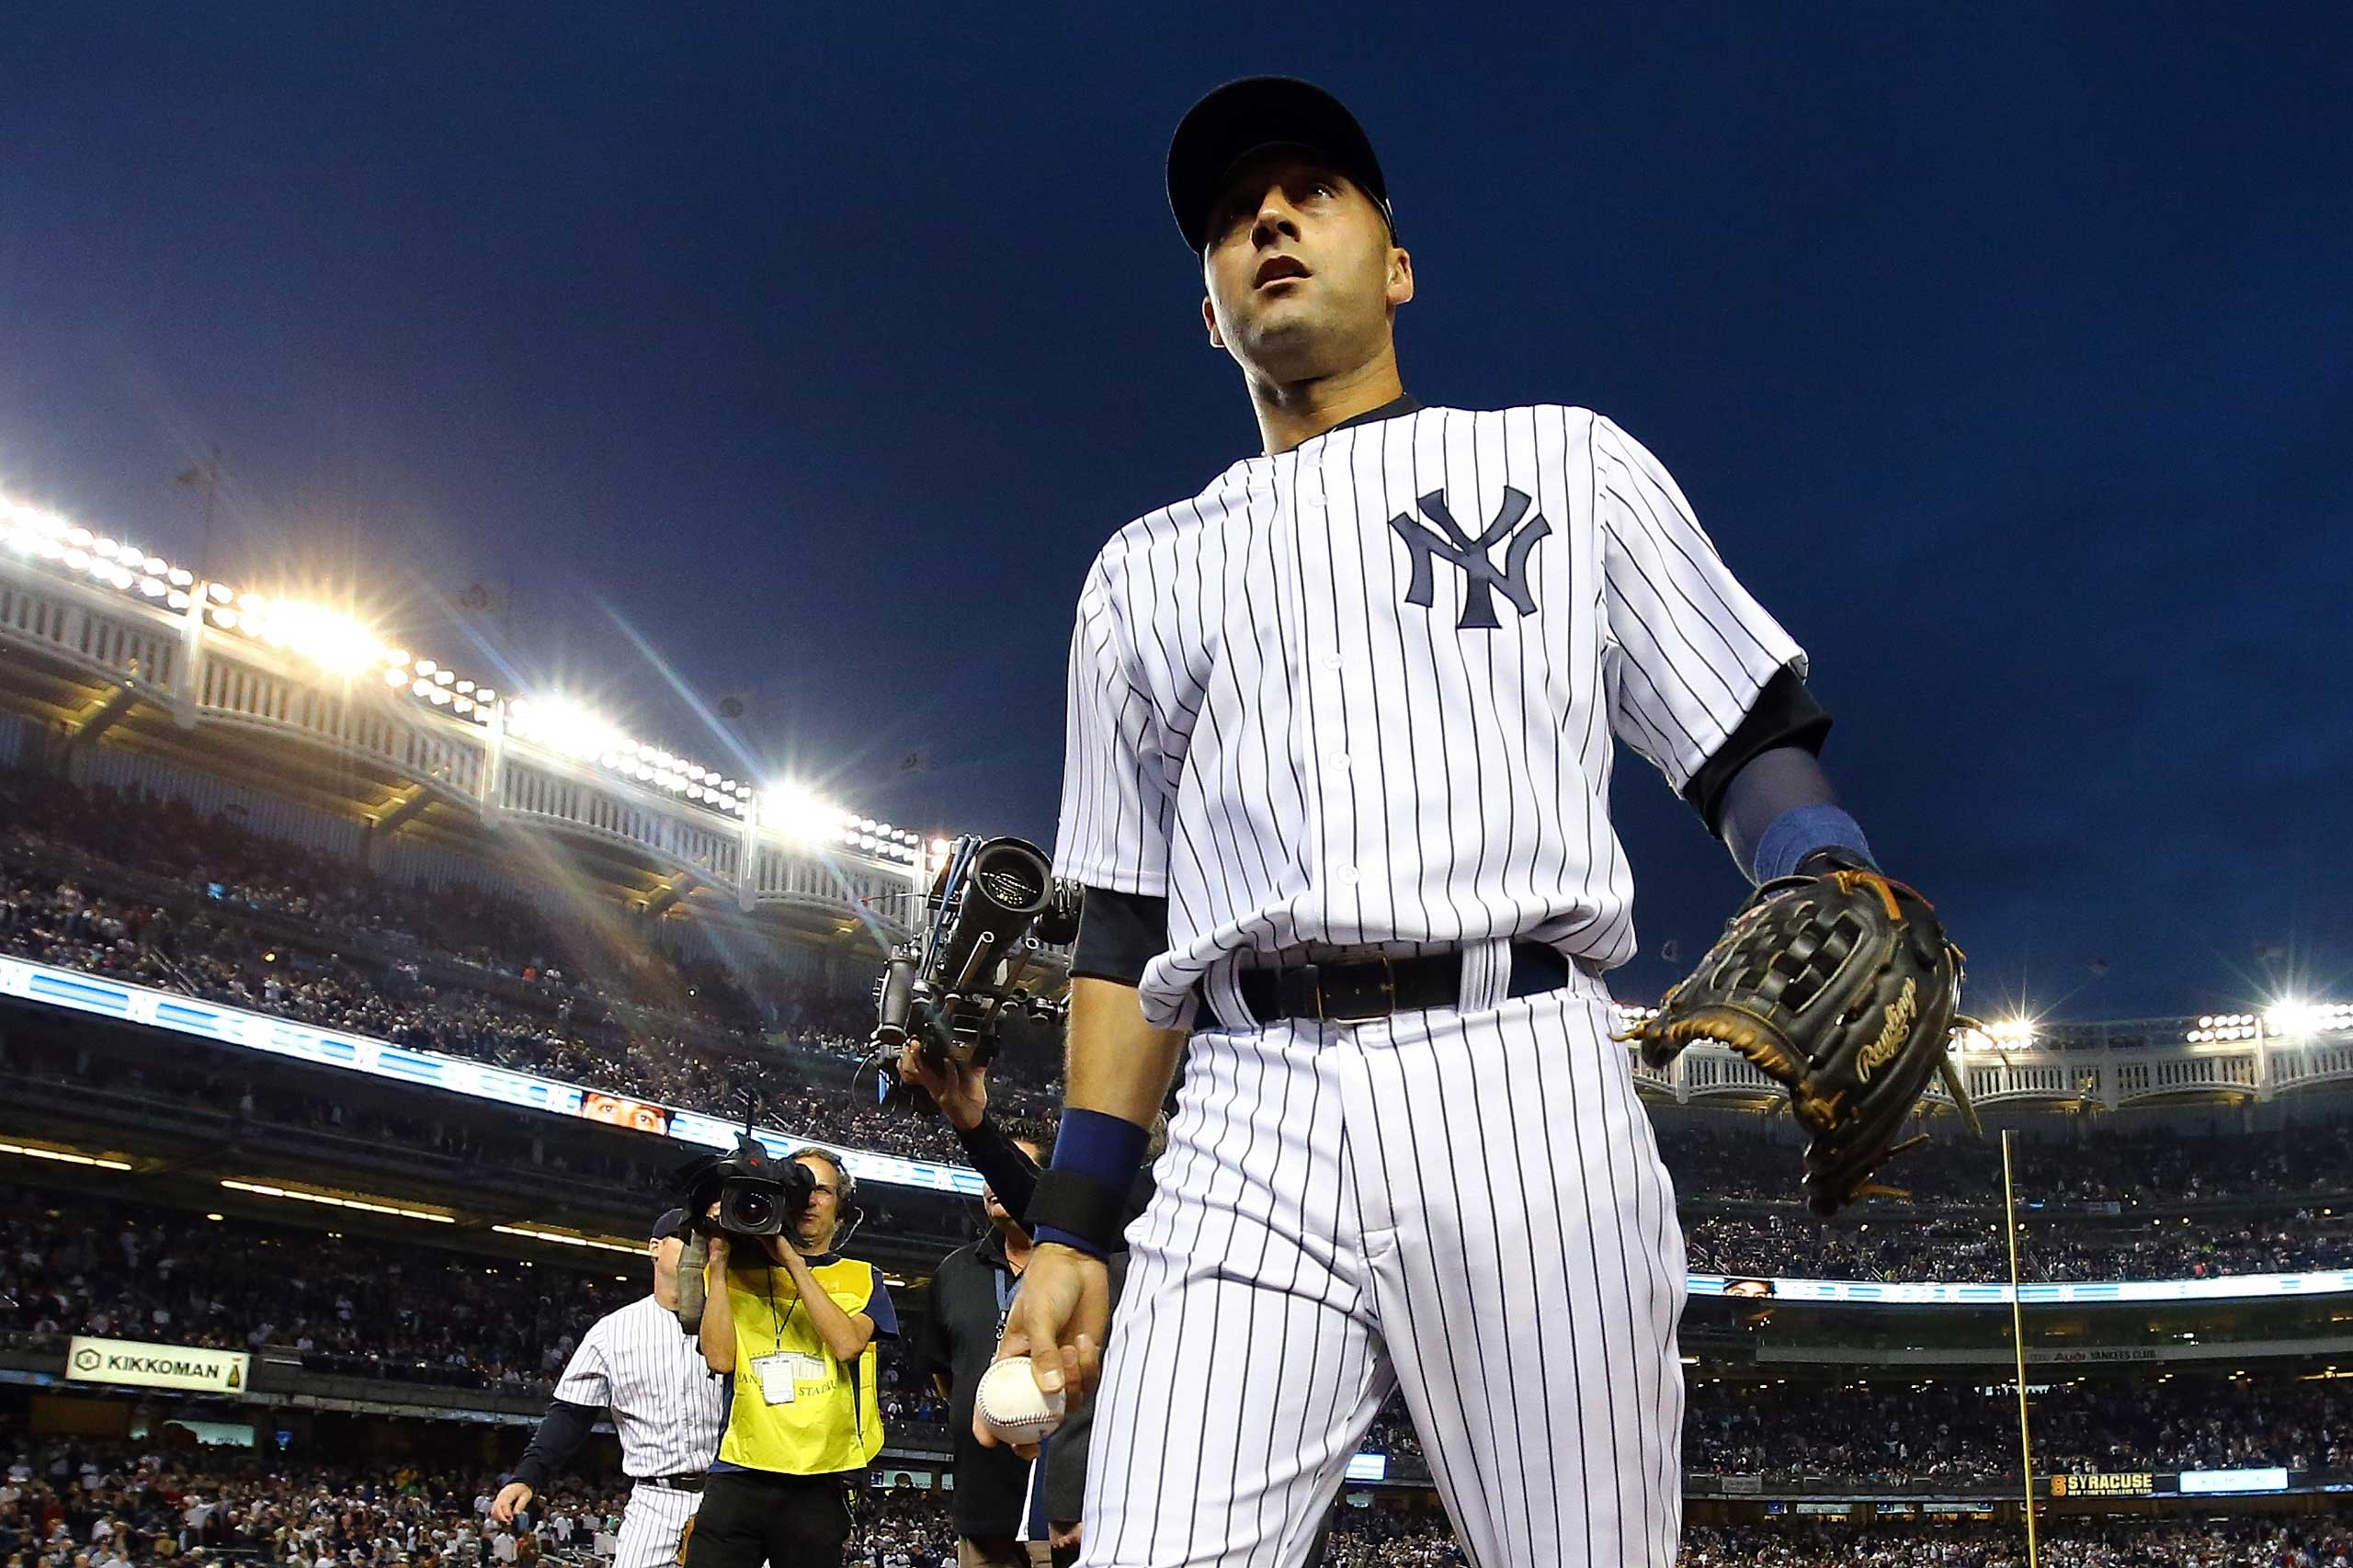 Derek Jeter of the New York Yankees walks into the dugout against the Baltimore Orioles at Yankee Stadium on Sept. 25, 2014.